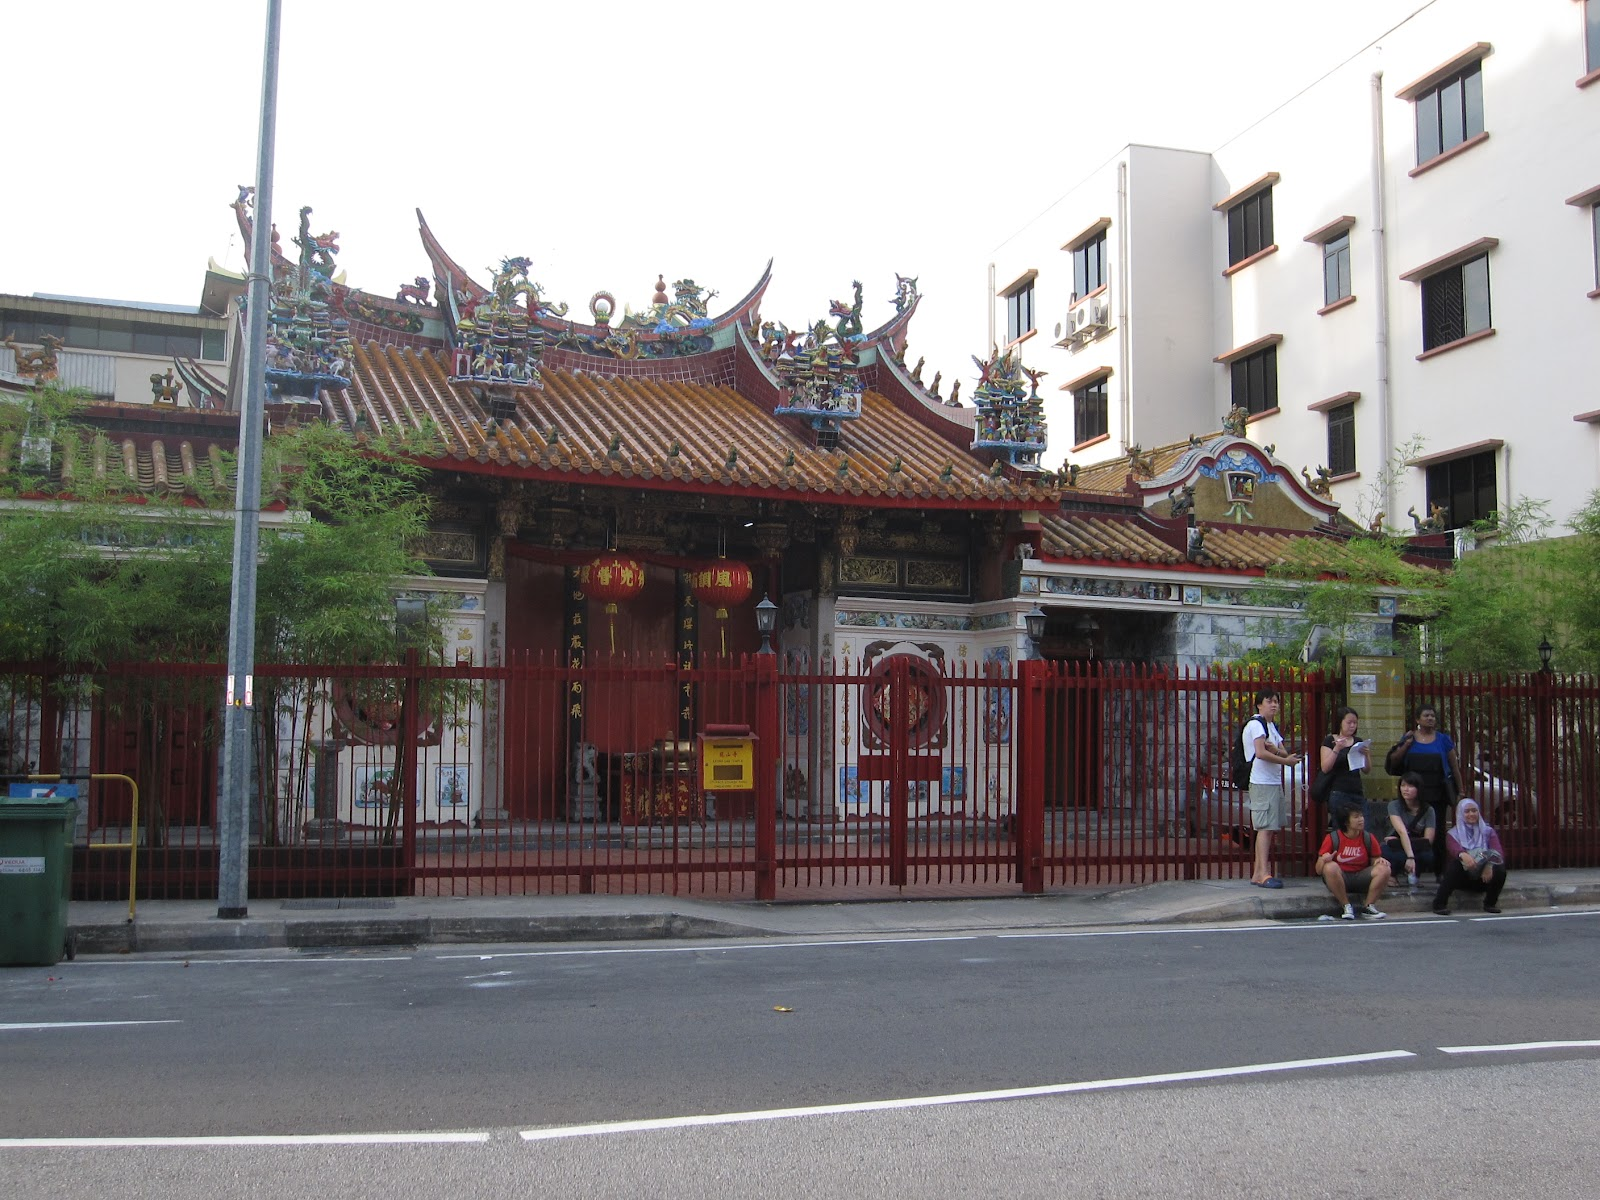 Leong San See Temple Singapore Map,Map of Leong San See Temple Singapore,Tourist Attractions in Singapore,Things to do in Singapore,Leong San See Temple Singapore accommodation destinations attractions hotels map reviews photos pictures